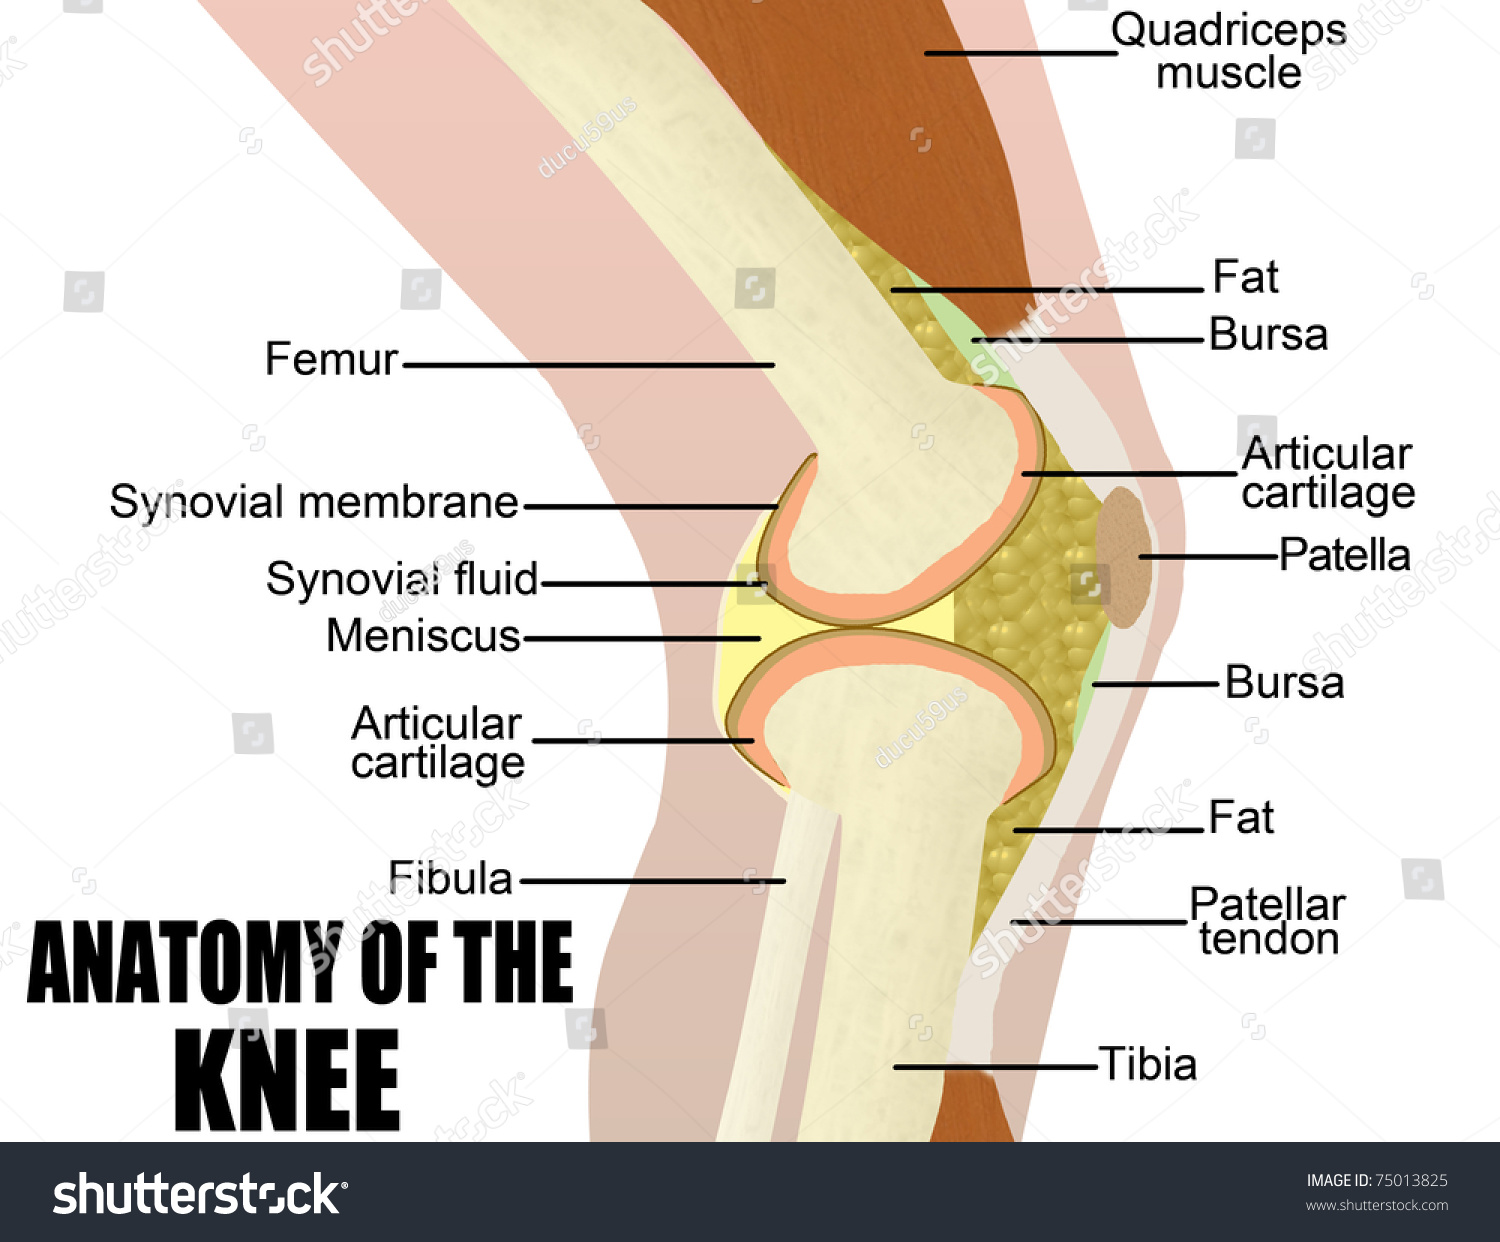 Anatomy knee vector illustration for basic stock vector 75013825 anatomy of the knee vector illustration for basic medical education for clinics ccuart Gallery